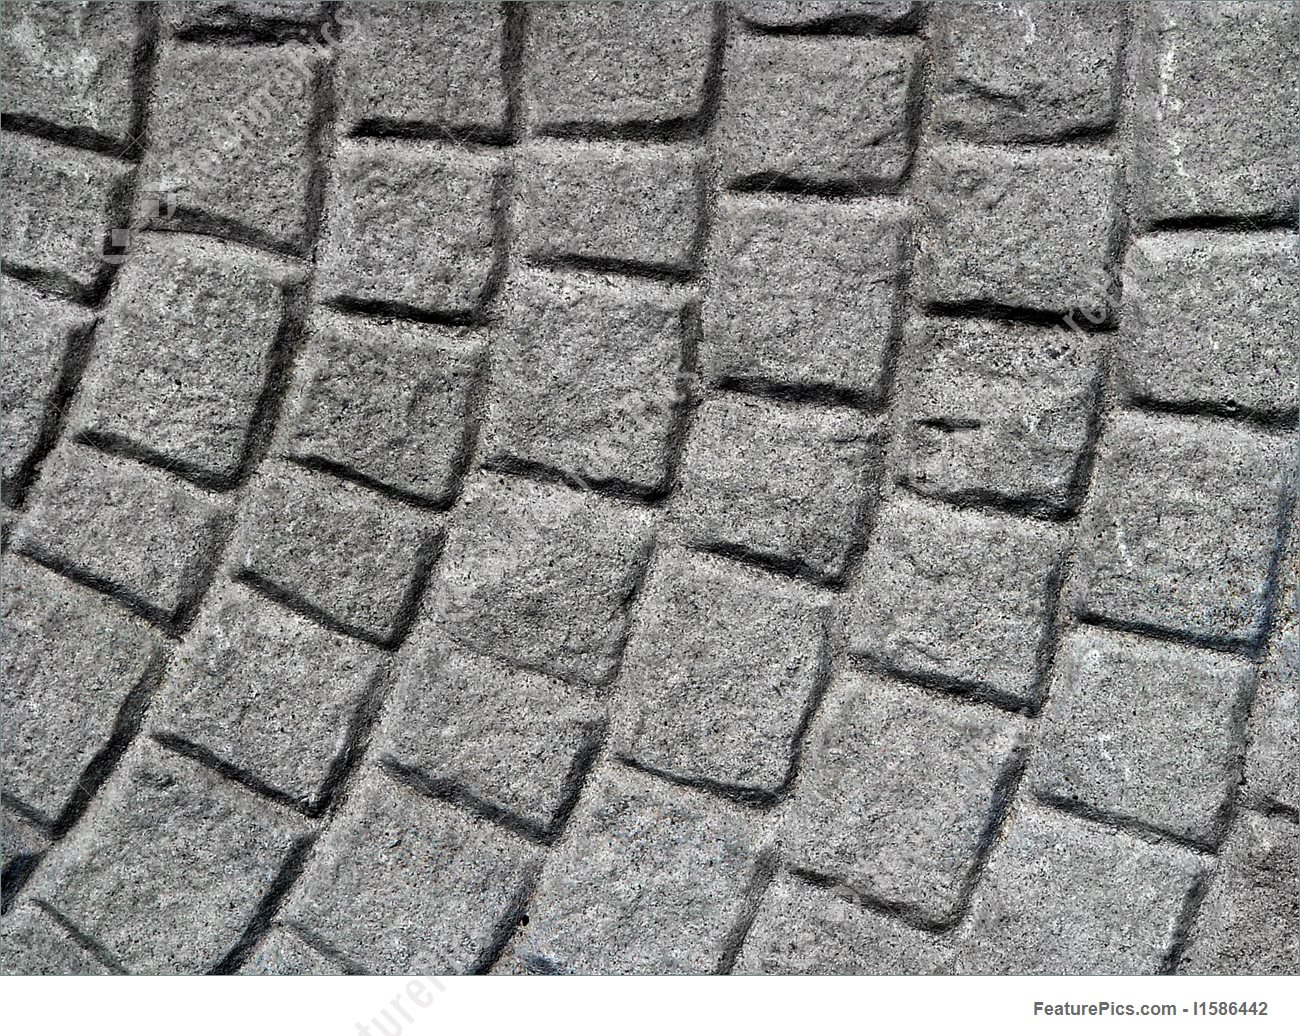 paving stone close view of an abstract image made with paving stones. ZHJRYQN